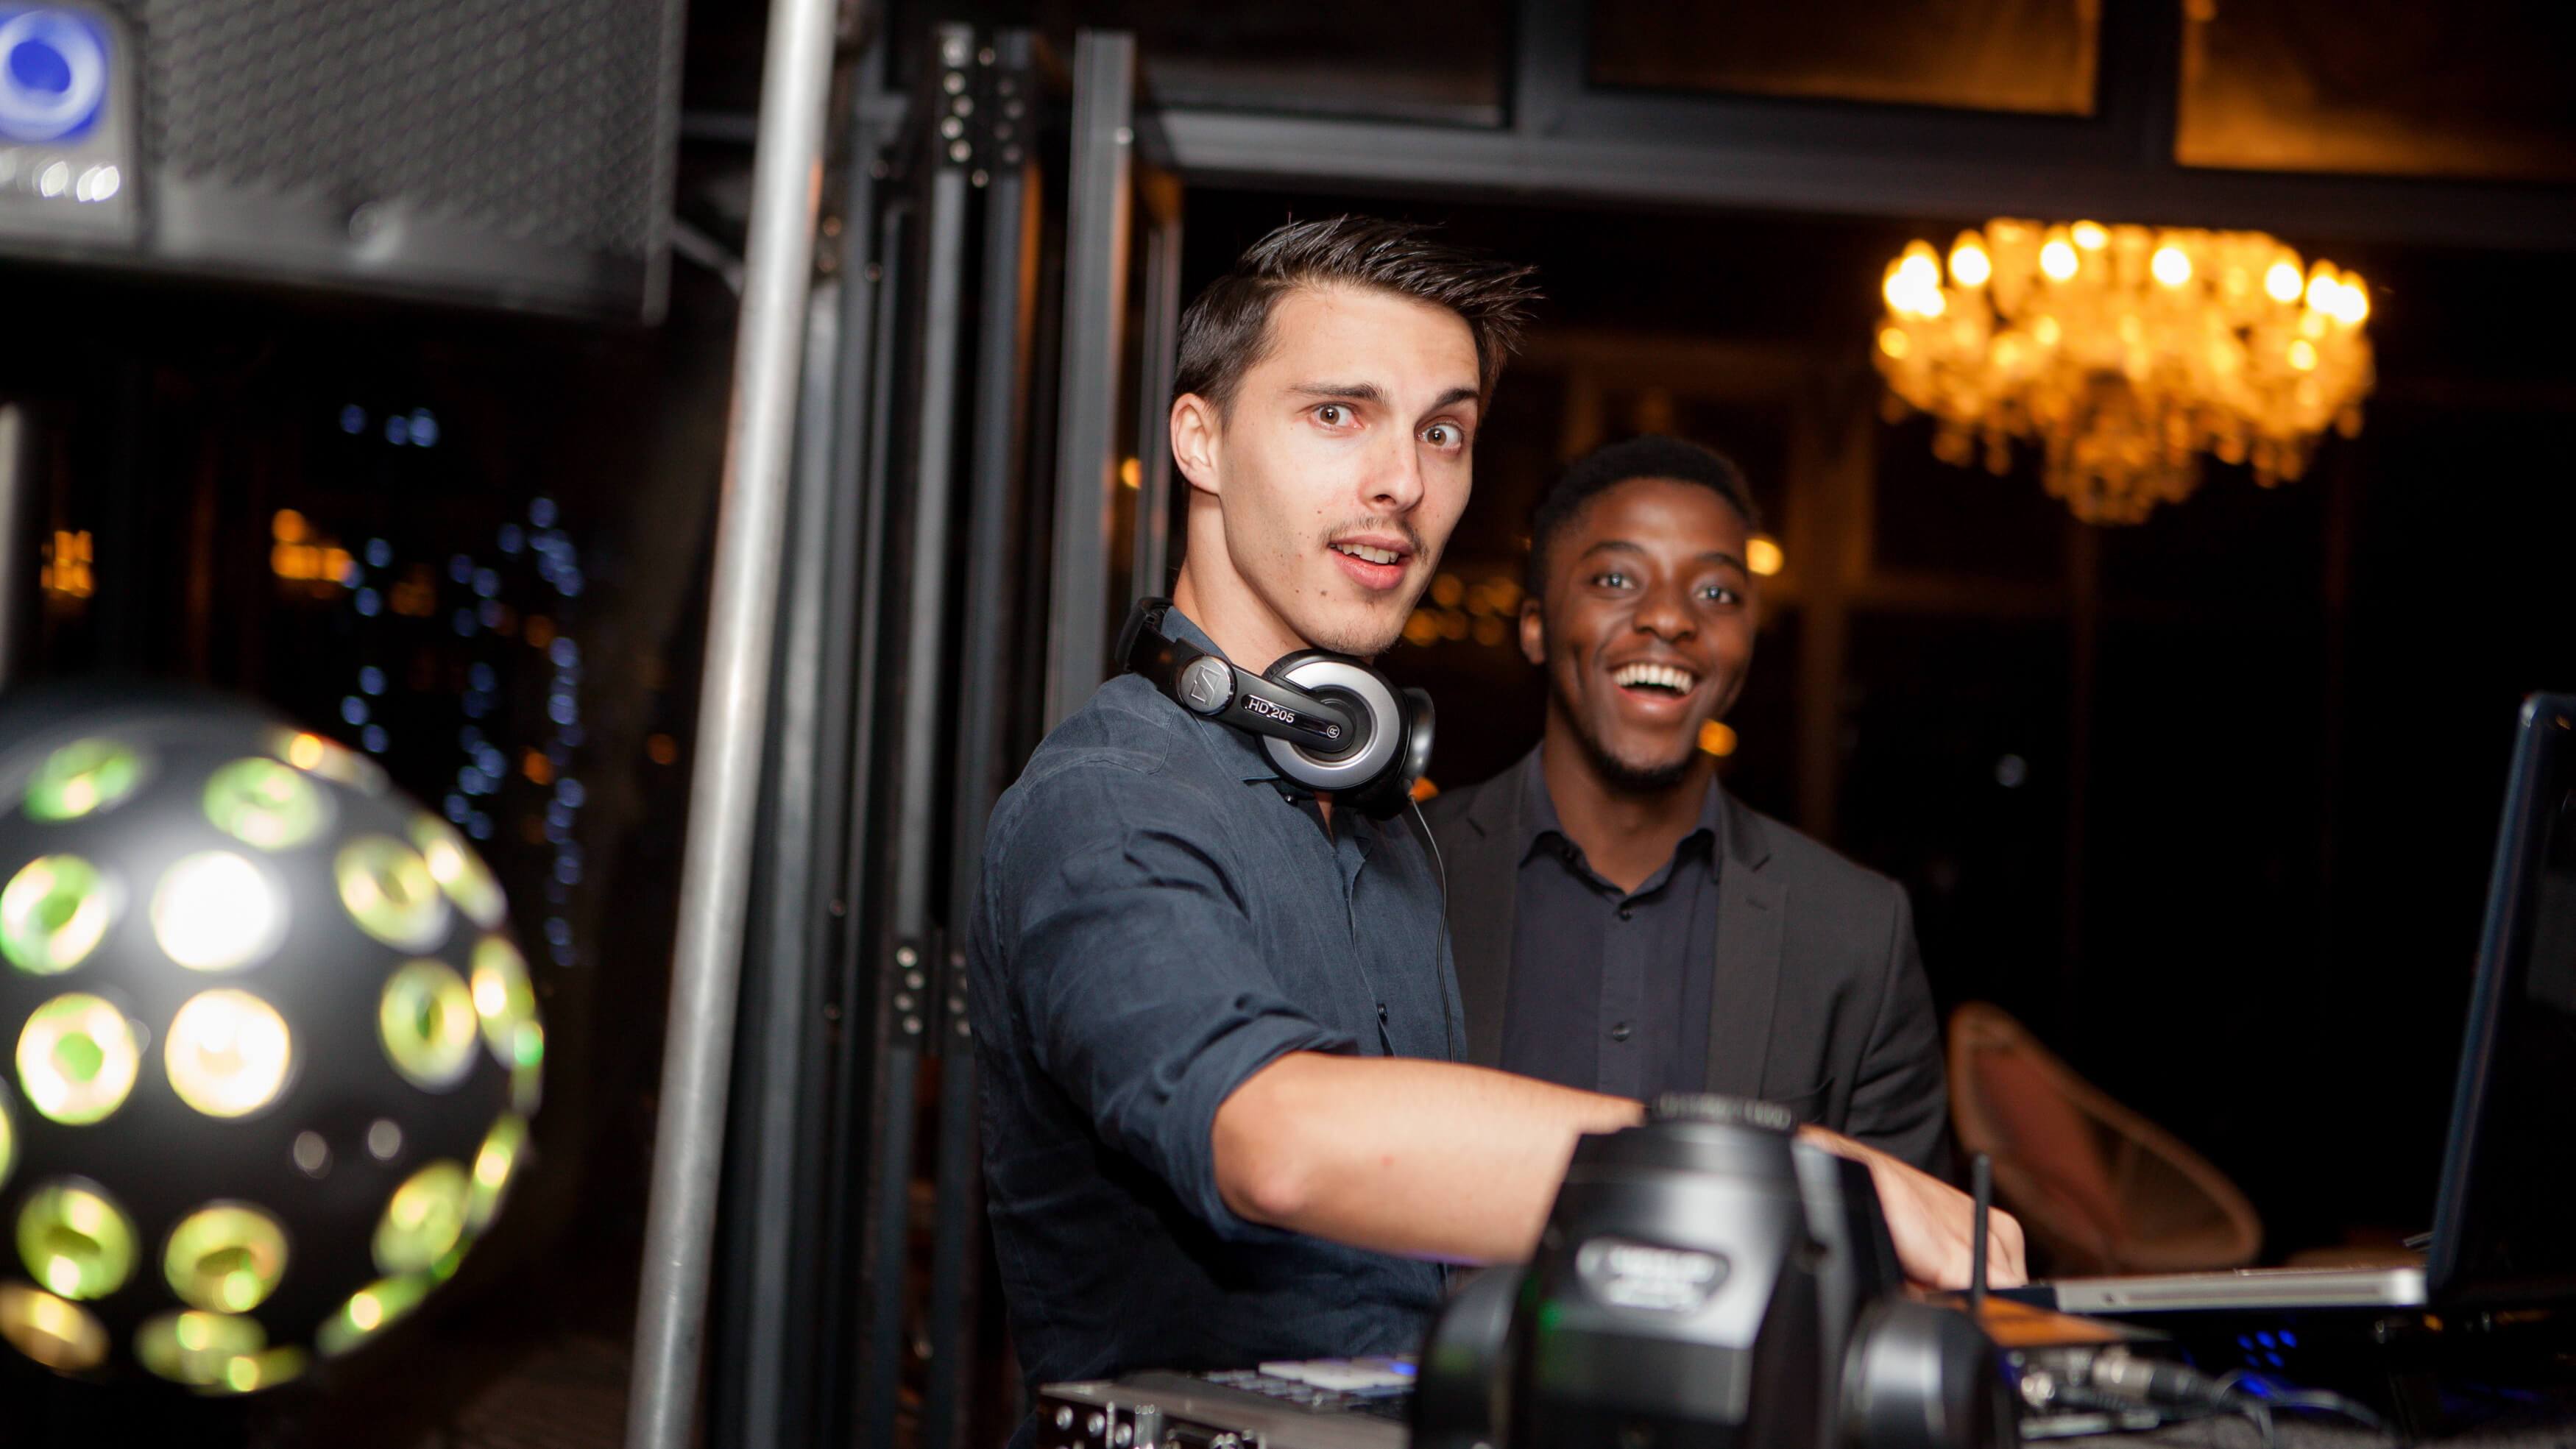 A handsome DJ and his friend playing the best wedding music.